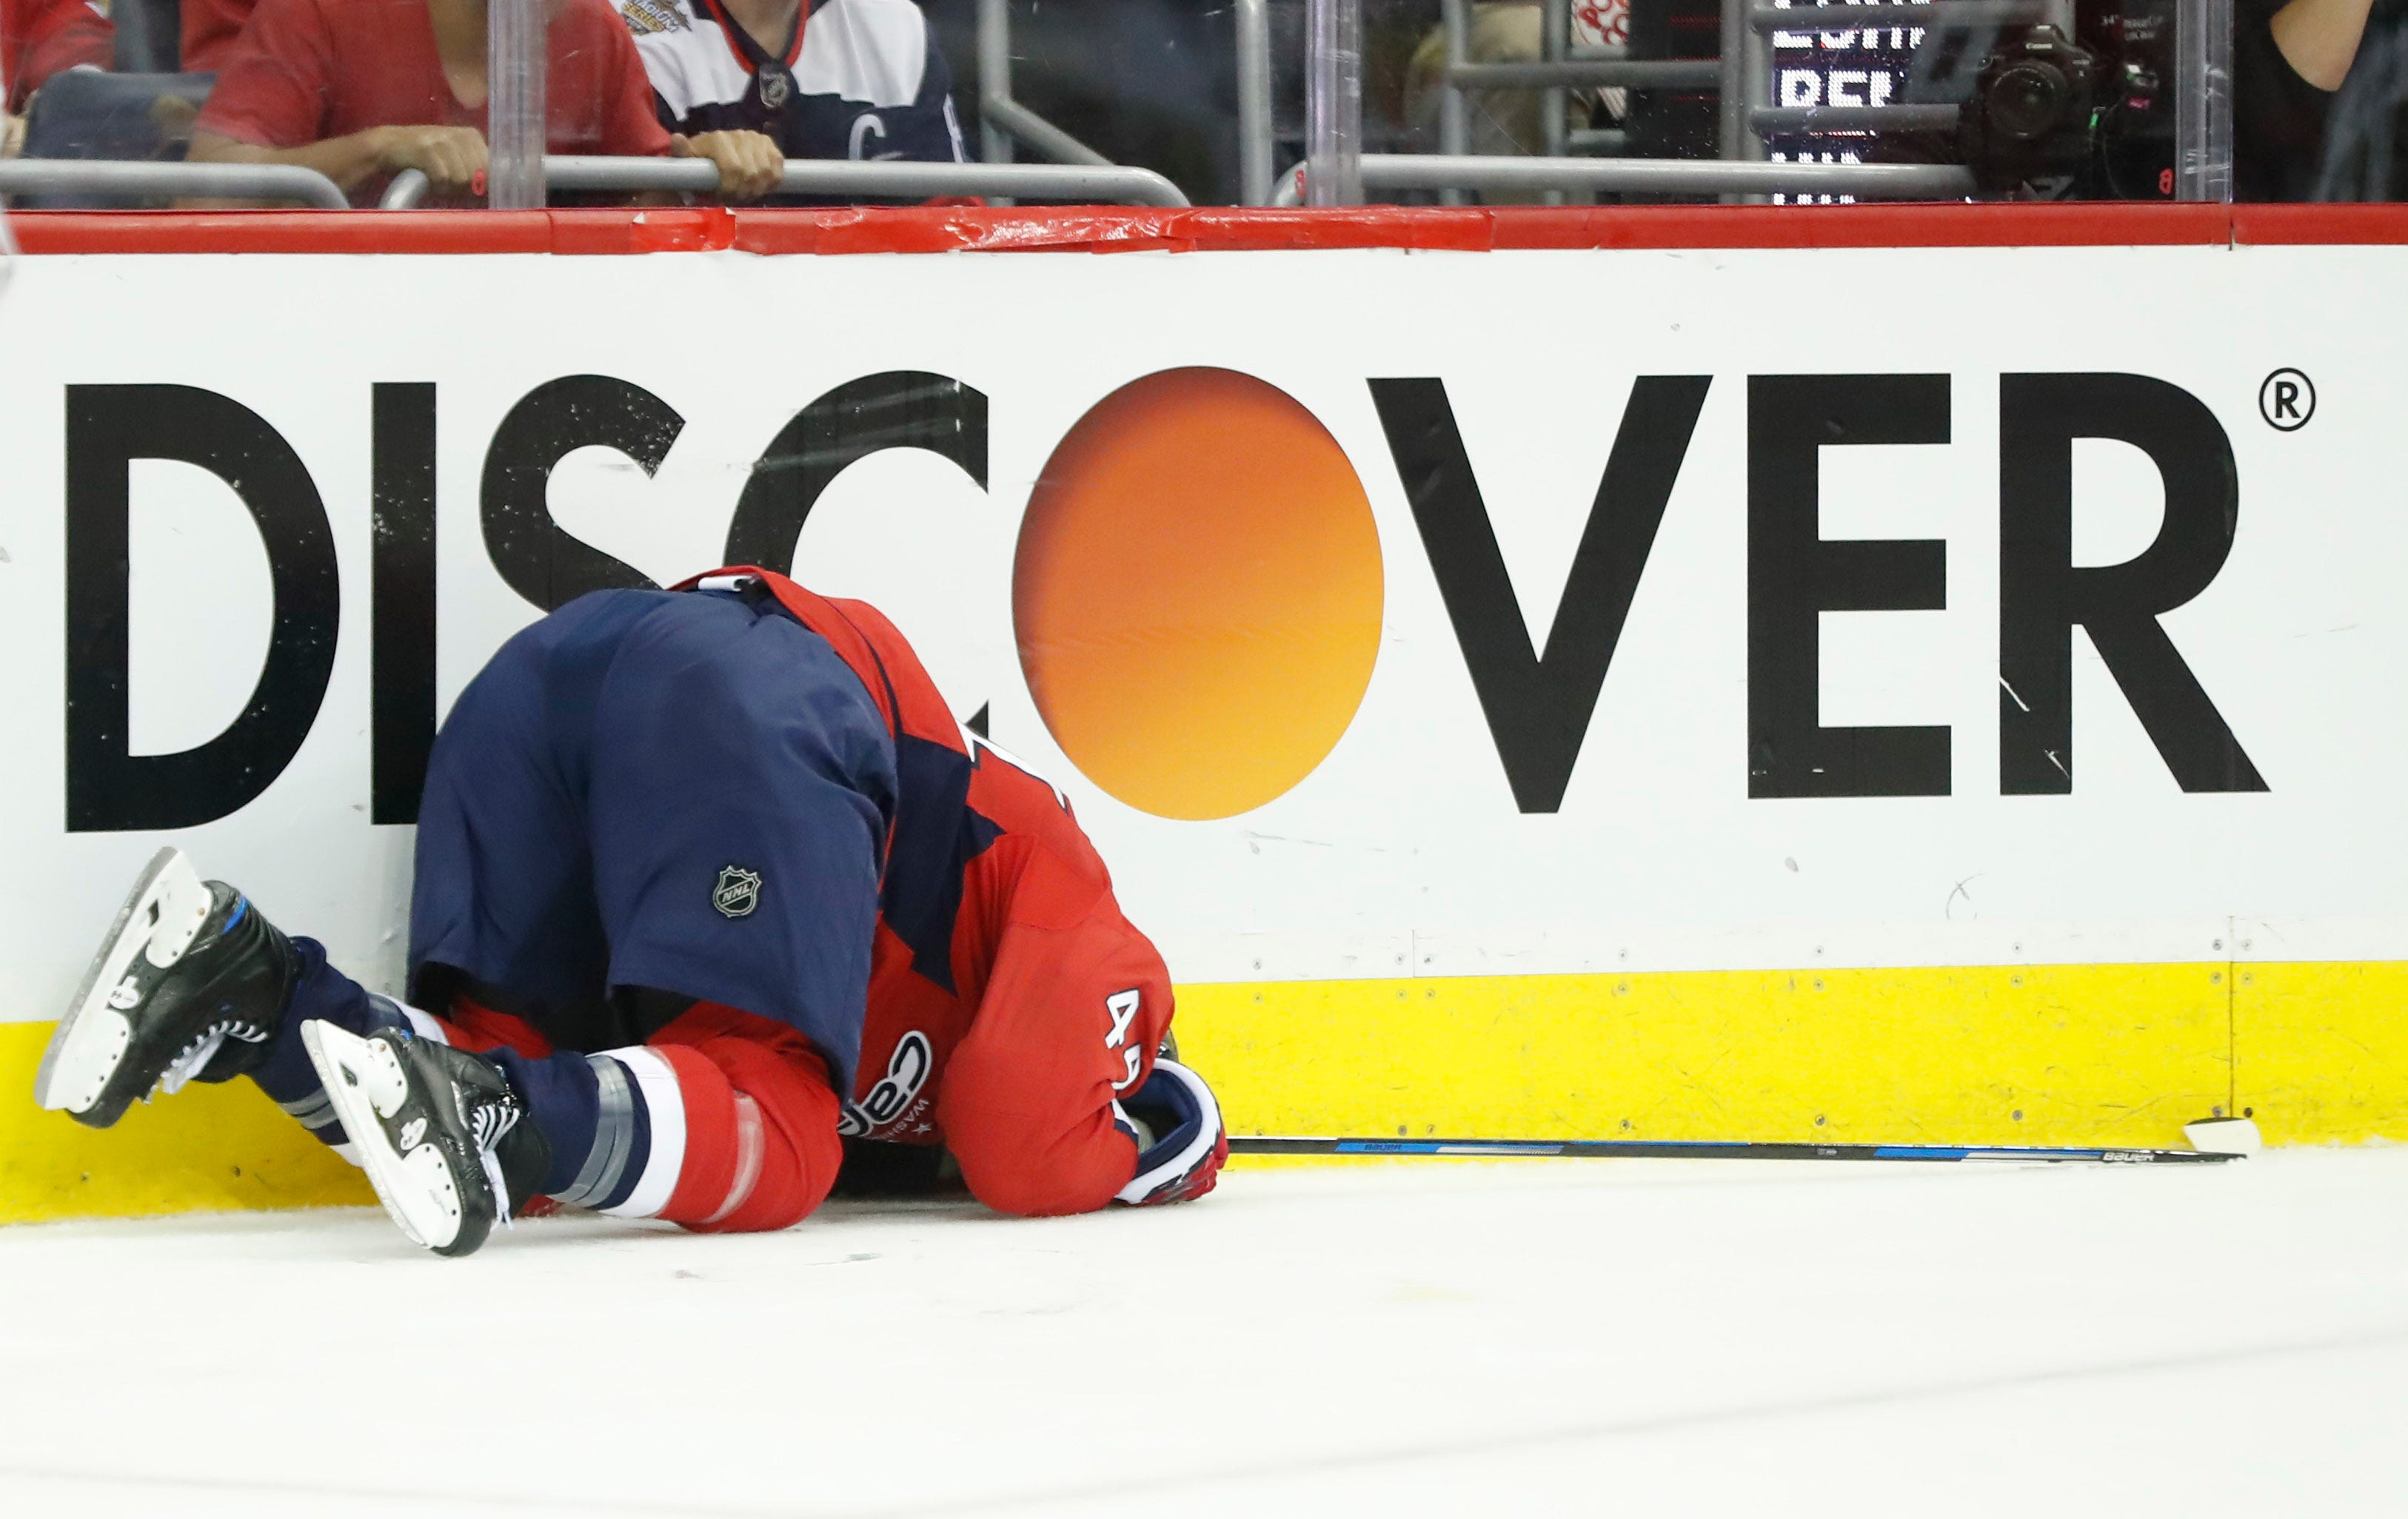 Brooks Orpik: 'Just got the wind knocked out of me' on hit by James Neal